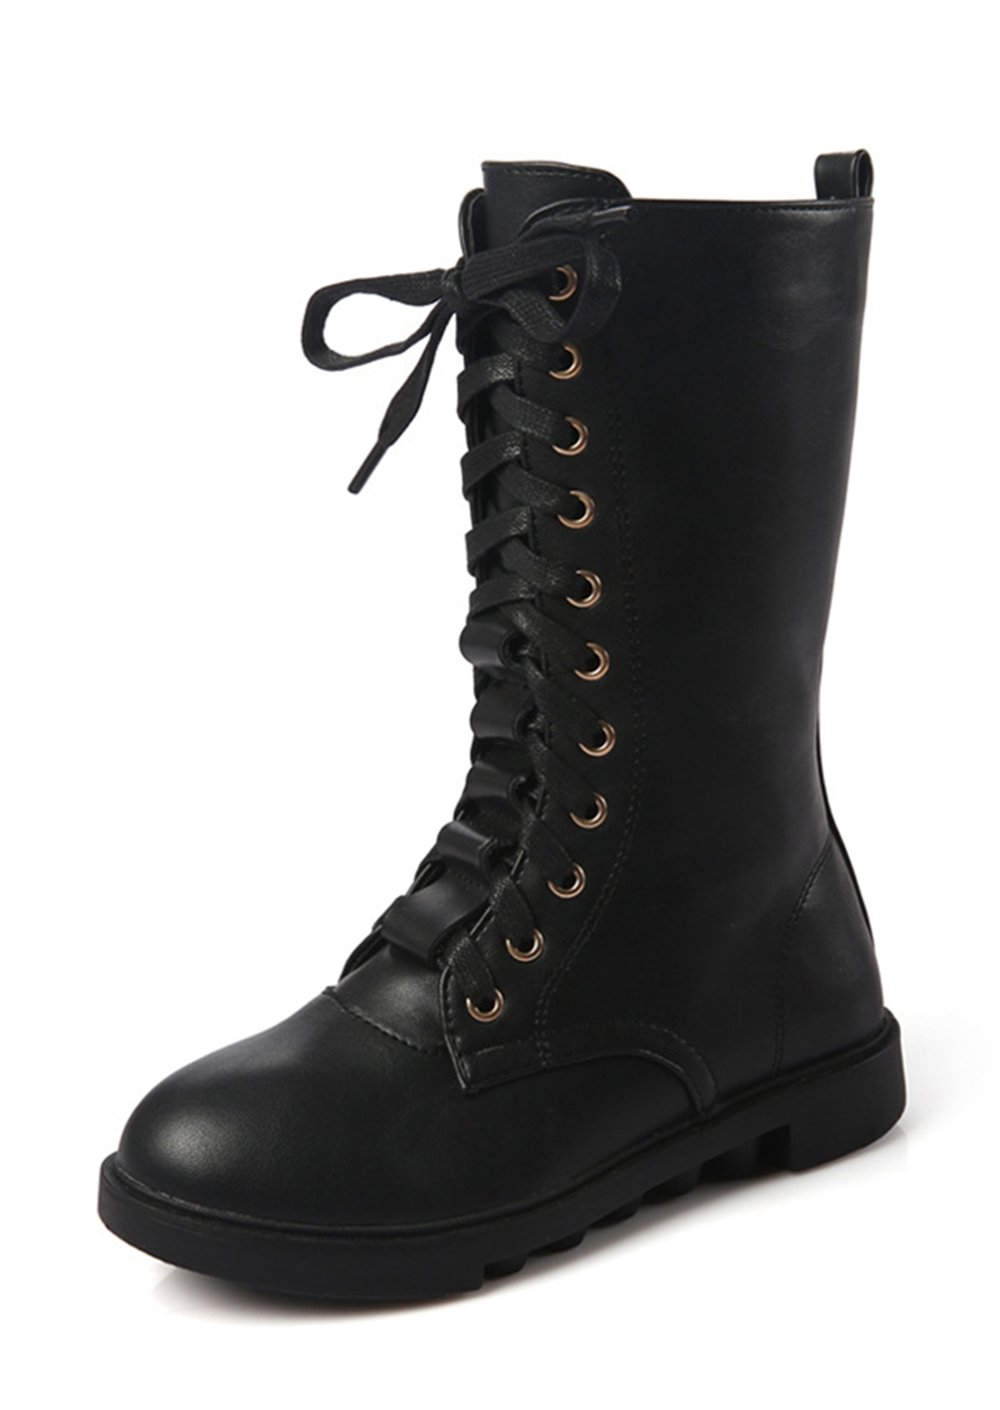 YING LAN Kids Girls Boys Leather Round Toe Military Lace up Mid Calf Combat Boots Winter Warm Snow Boots Black 32